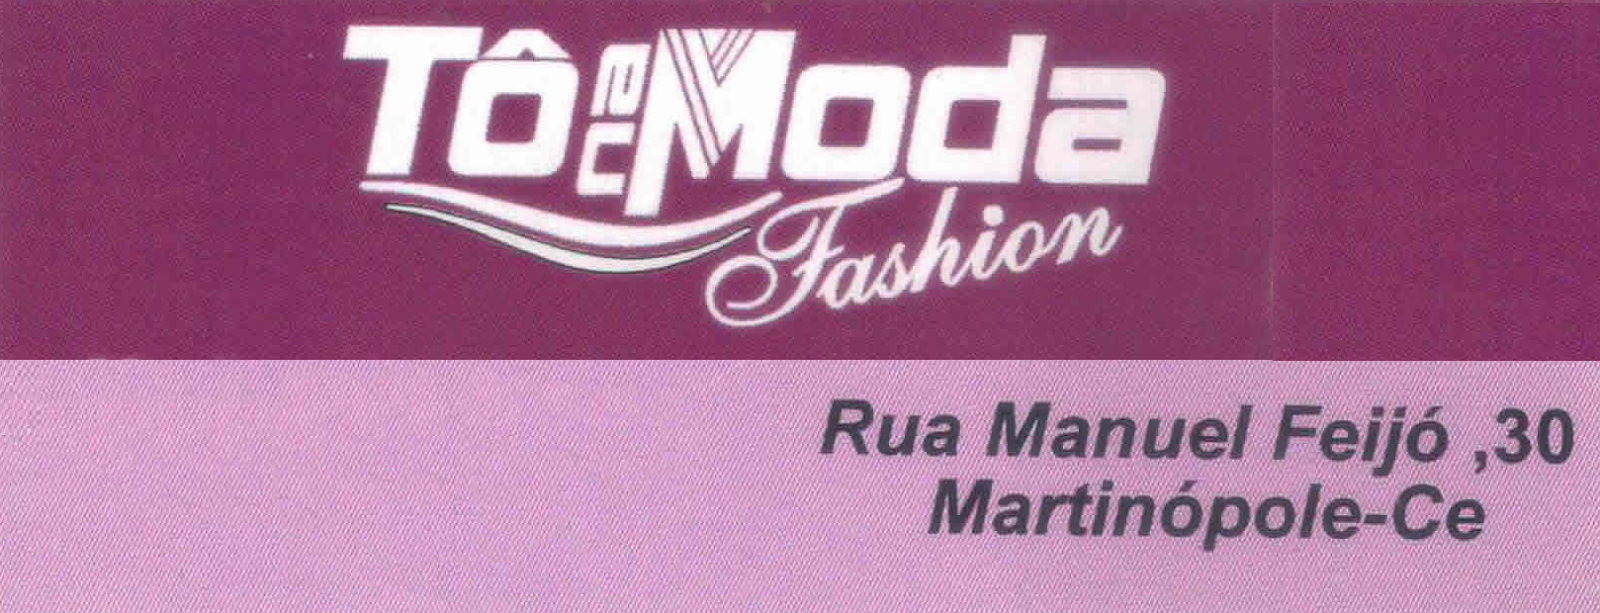 Tô Na Moda Fashion